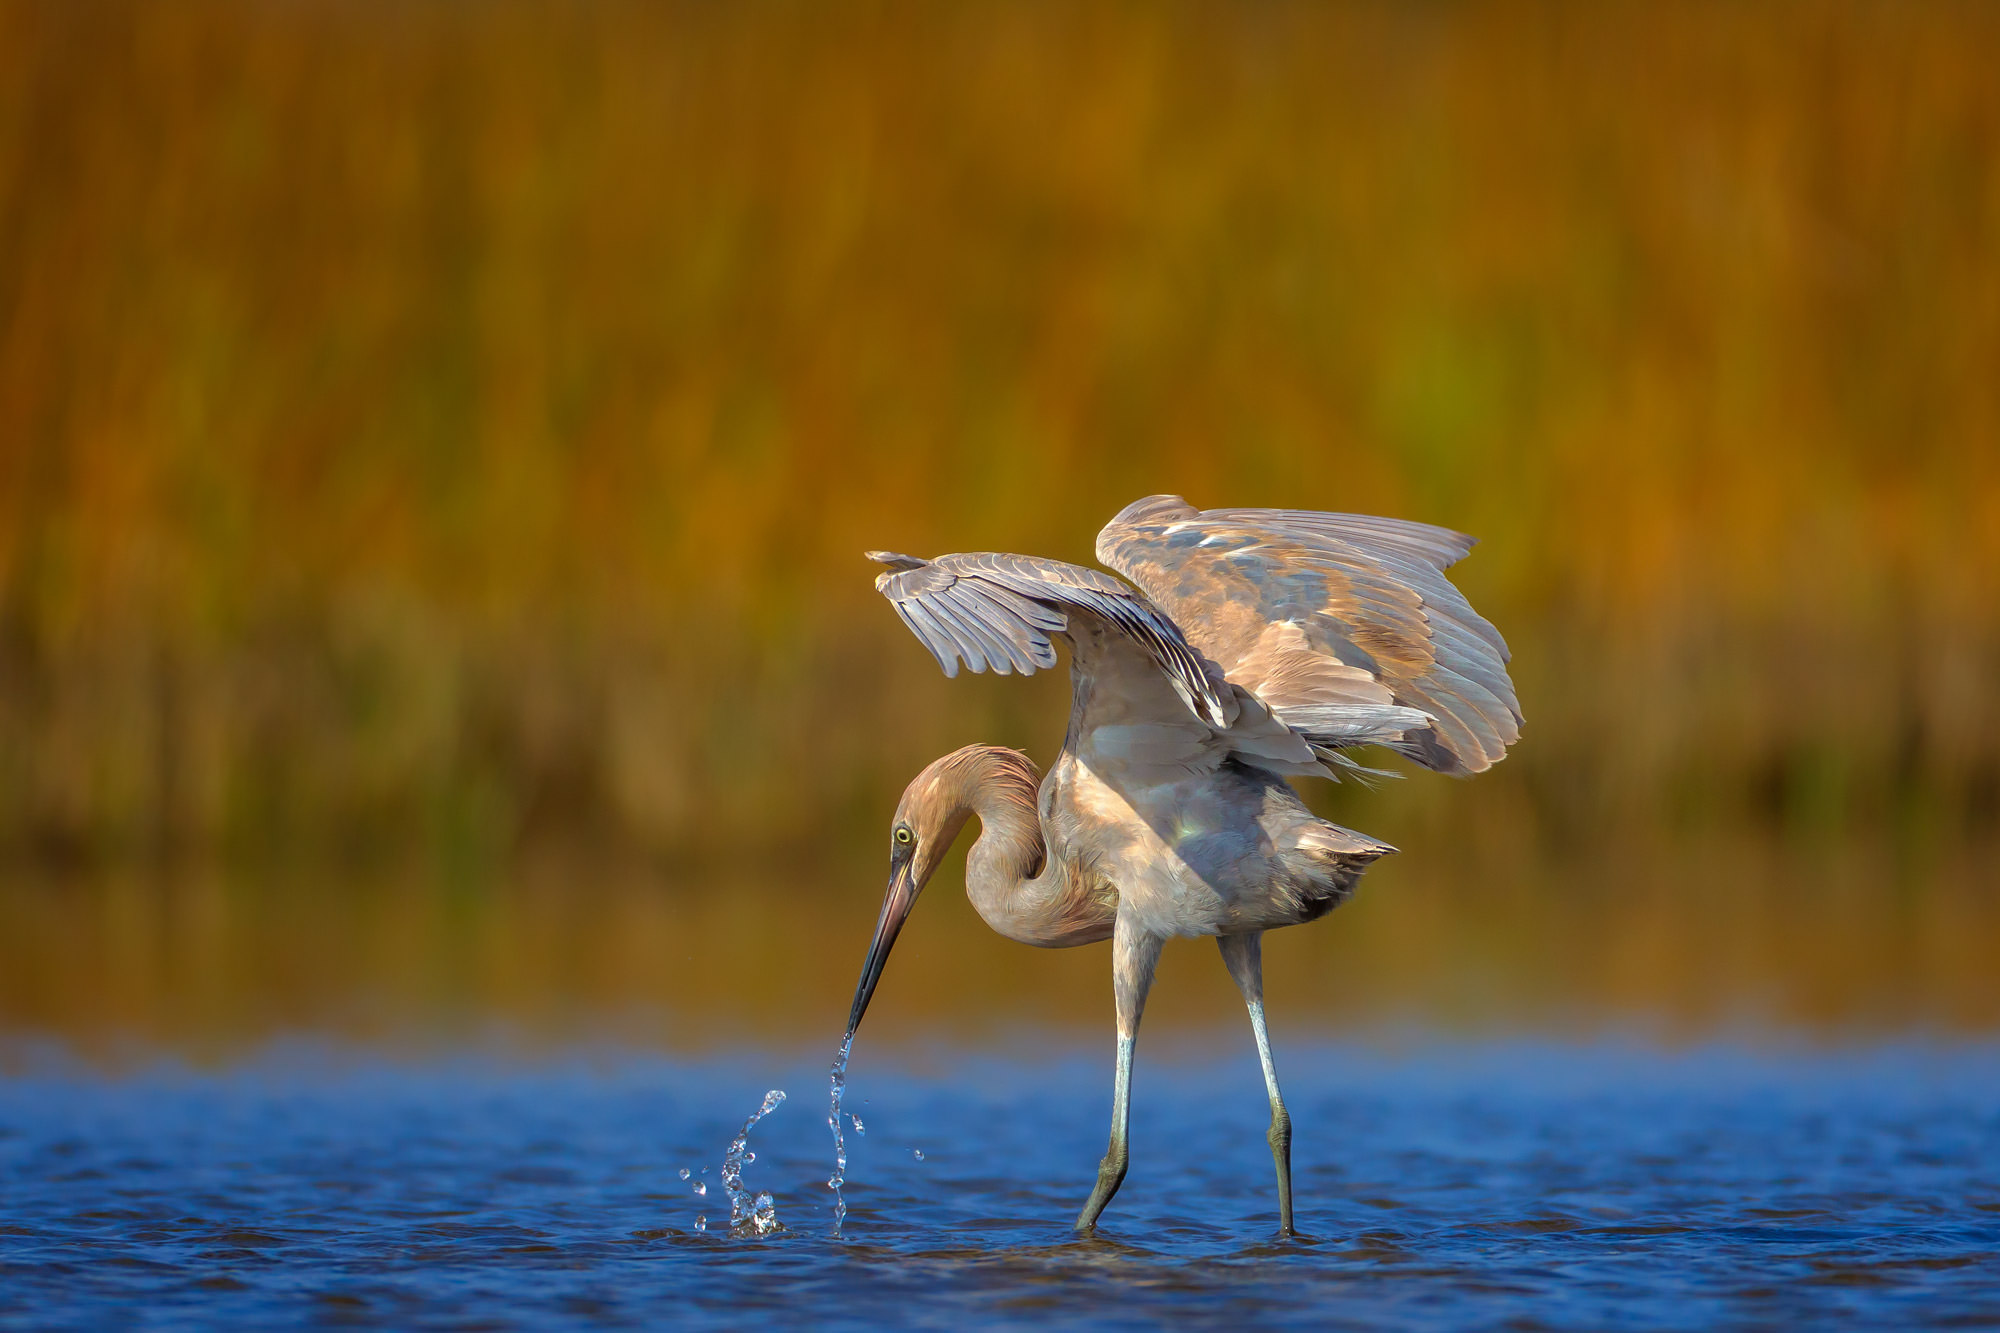 Egret, Reddish Egret, Florida, limited edition, photograph, fine art, wildlife, photo